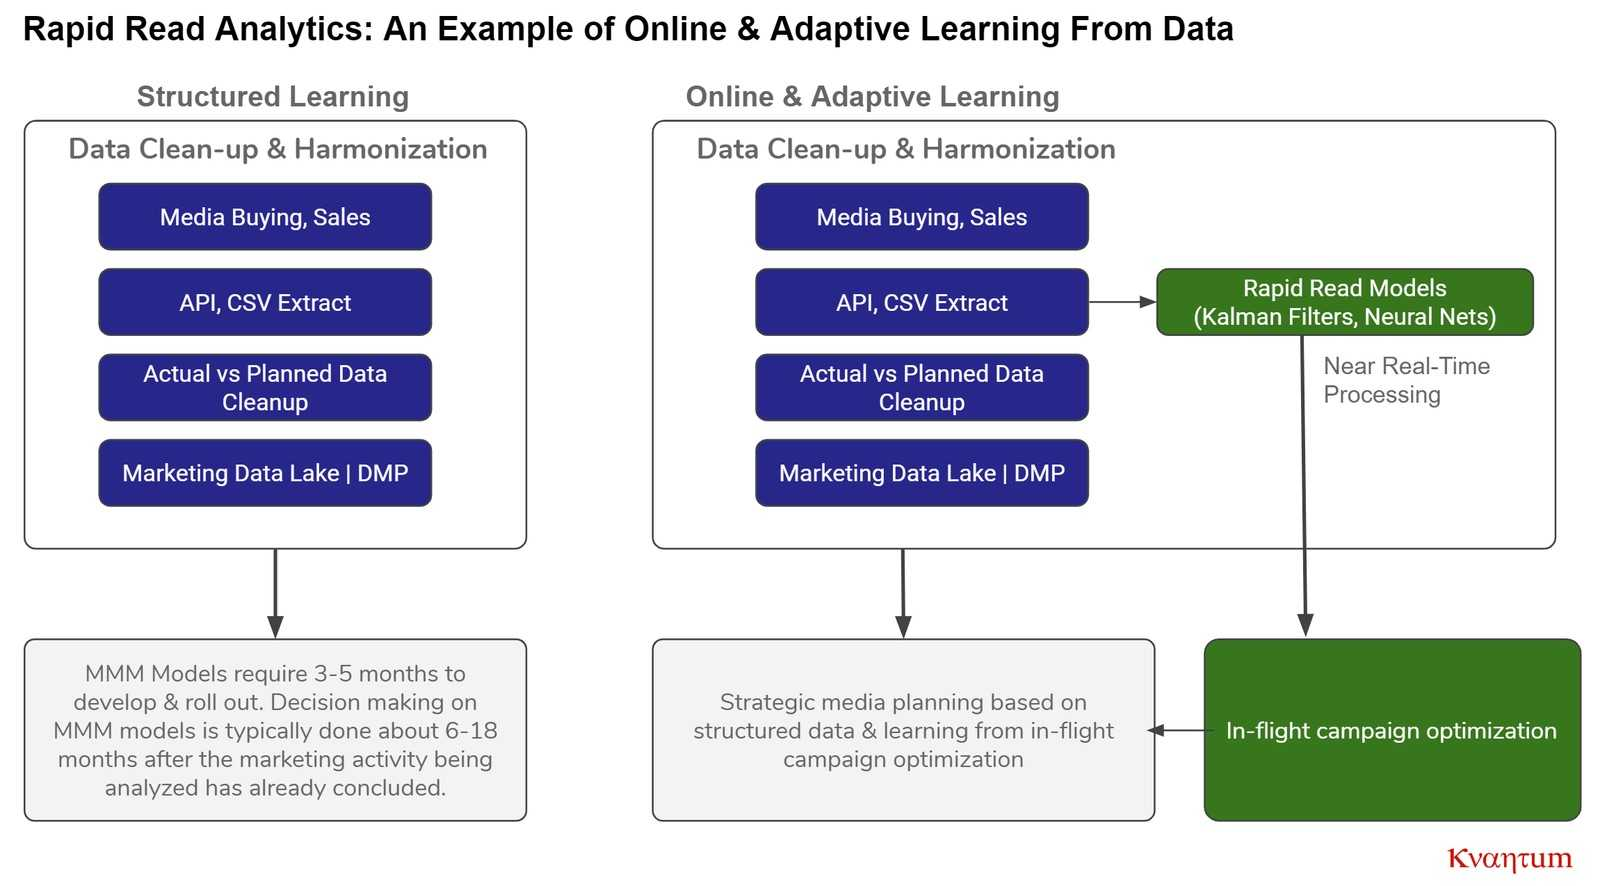 kvantum online adaptive learning example